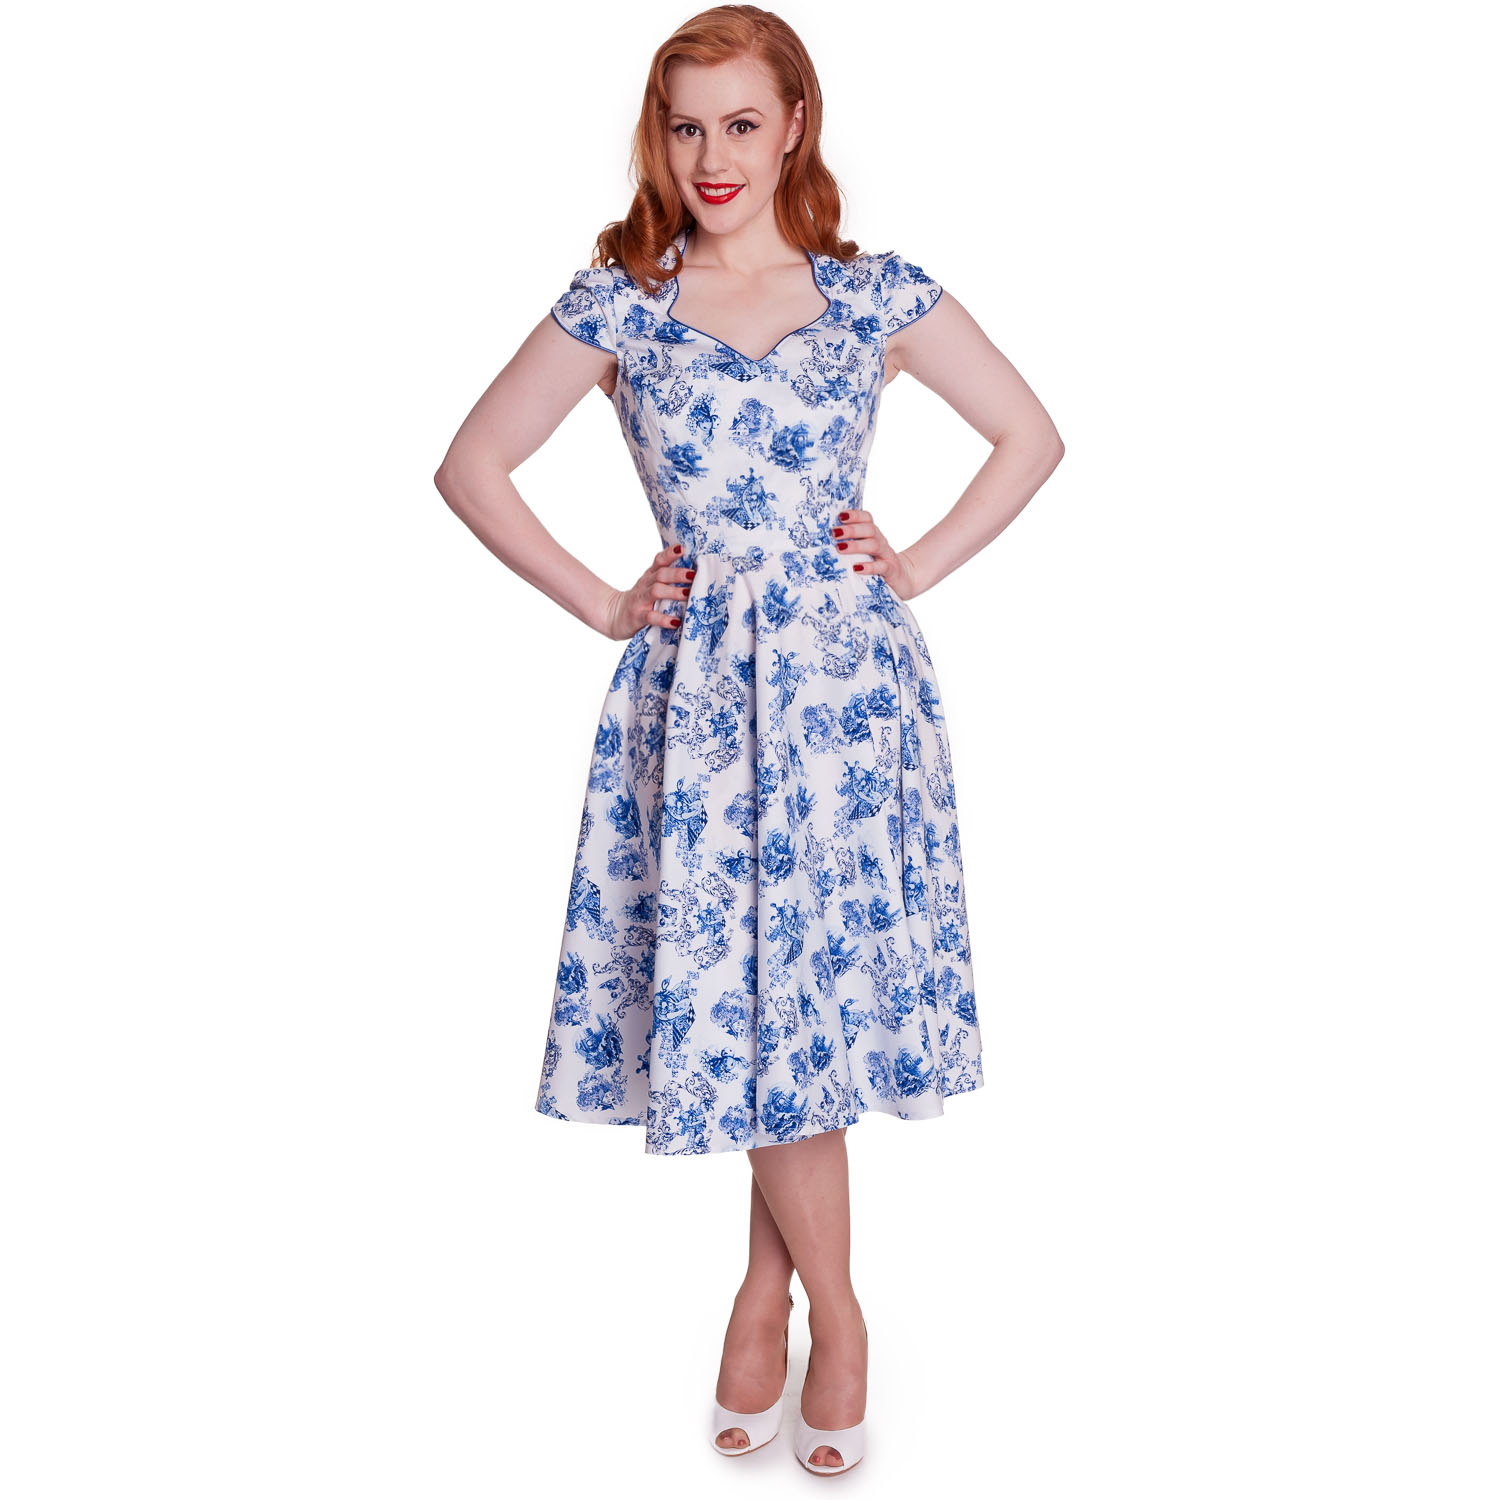 Hell-Bunny-Constance-Blue-Floral-Skull-Print-50s-Vintage-Summer-Tea-Dress